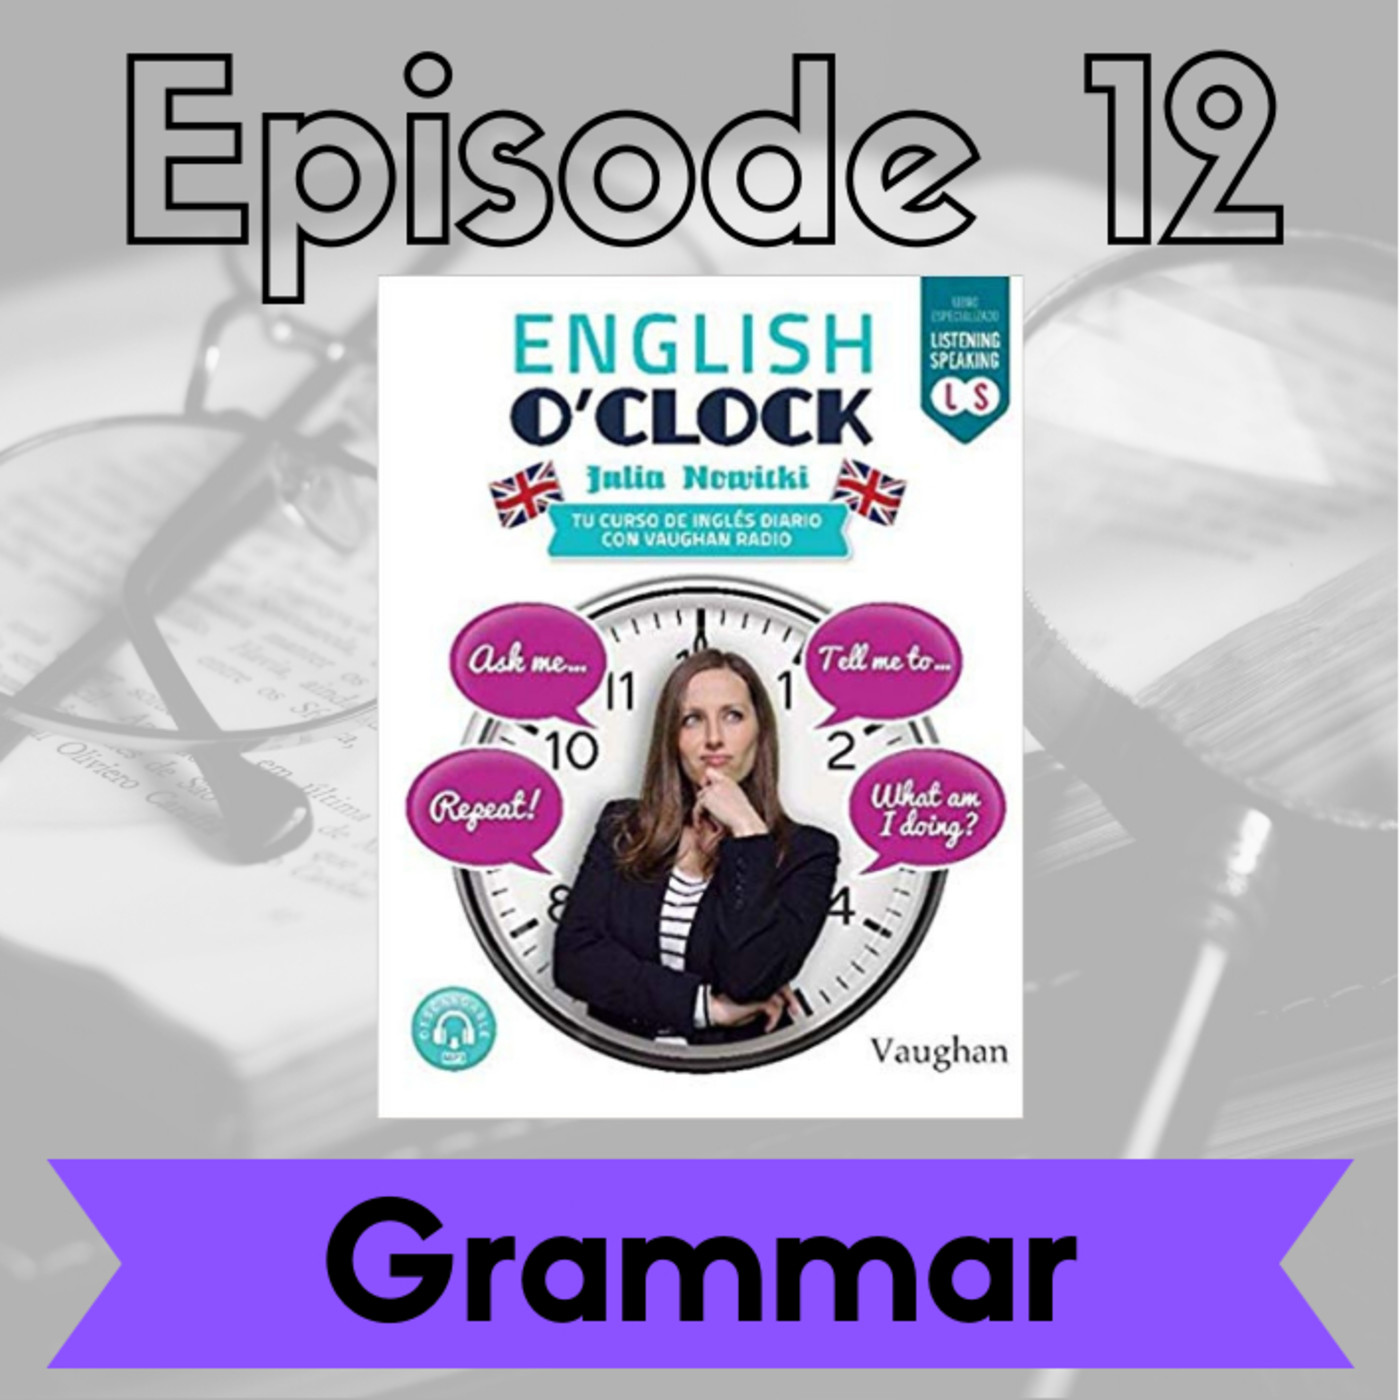 English o'clock 2.0 - Grammar Episode 12 - for, since & from... to... (25.09.2020)